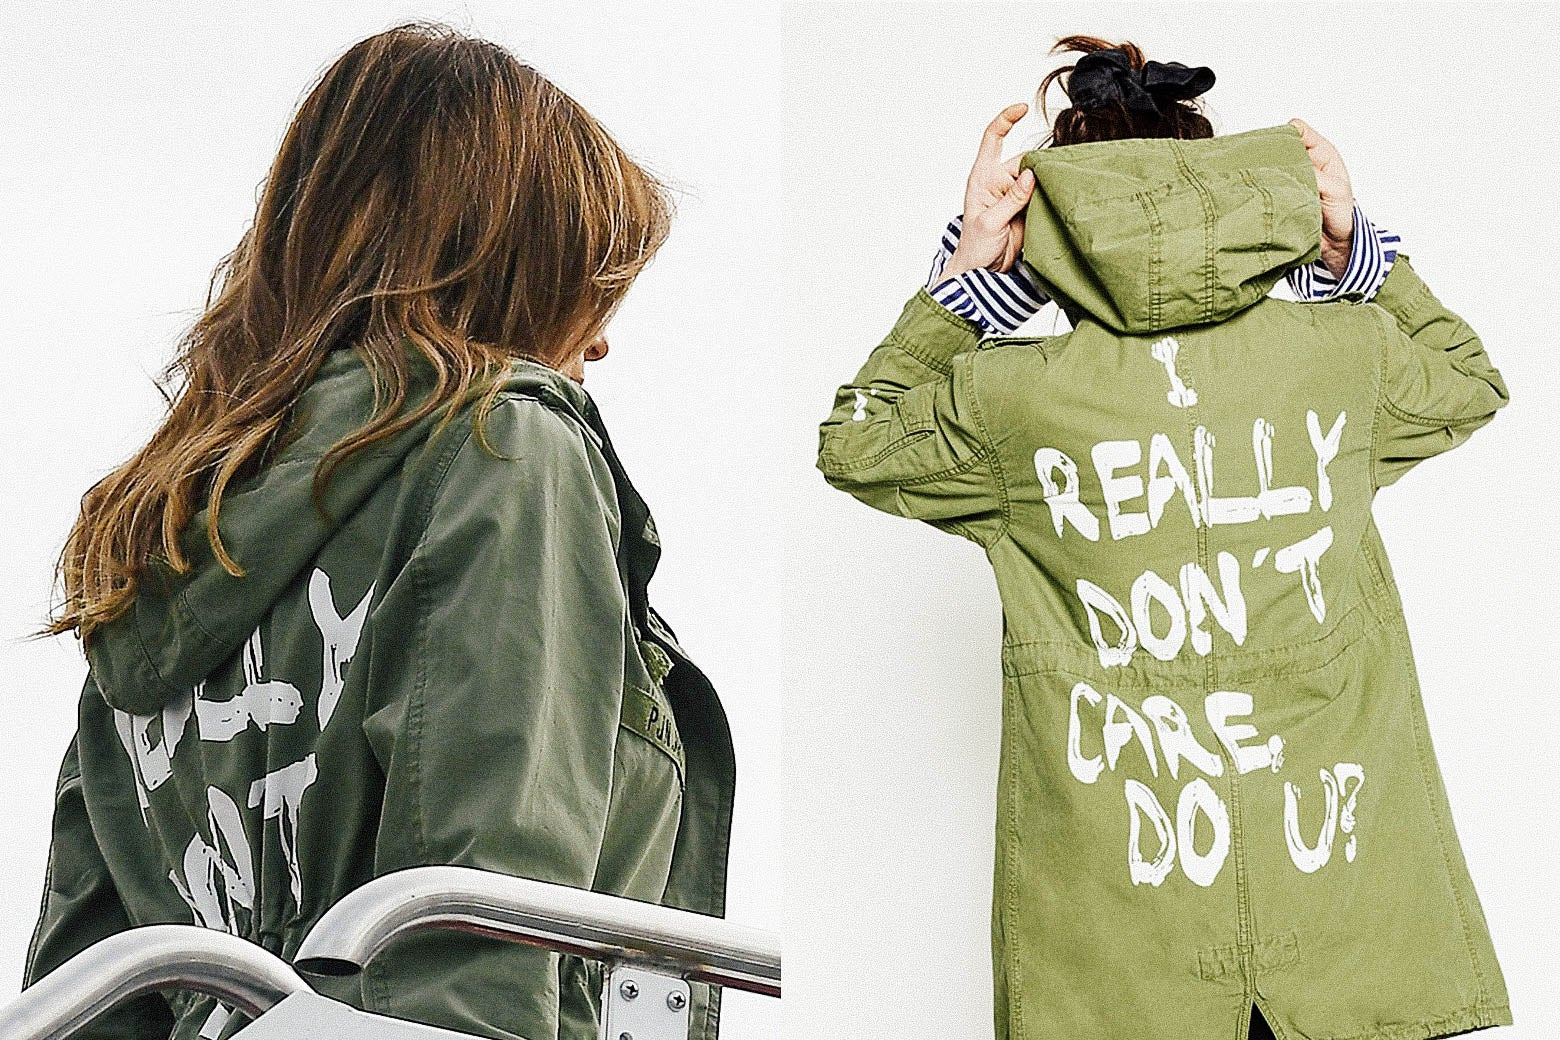 At left: Melania Trump boards a plane in the green jacket. At right: A product shot of the back of the jacket with the lettering visible.